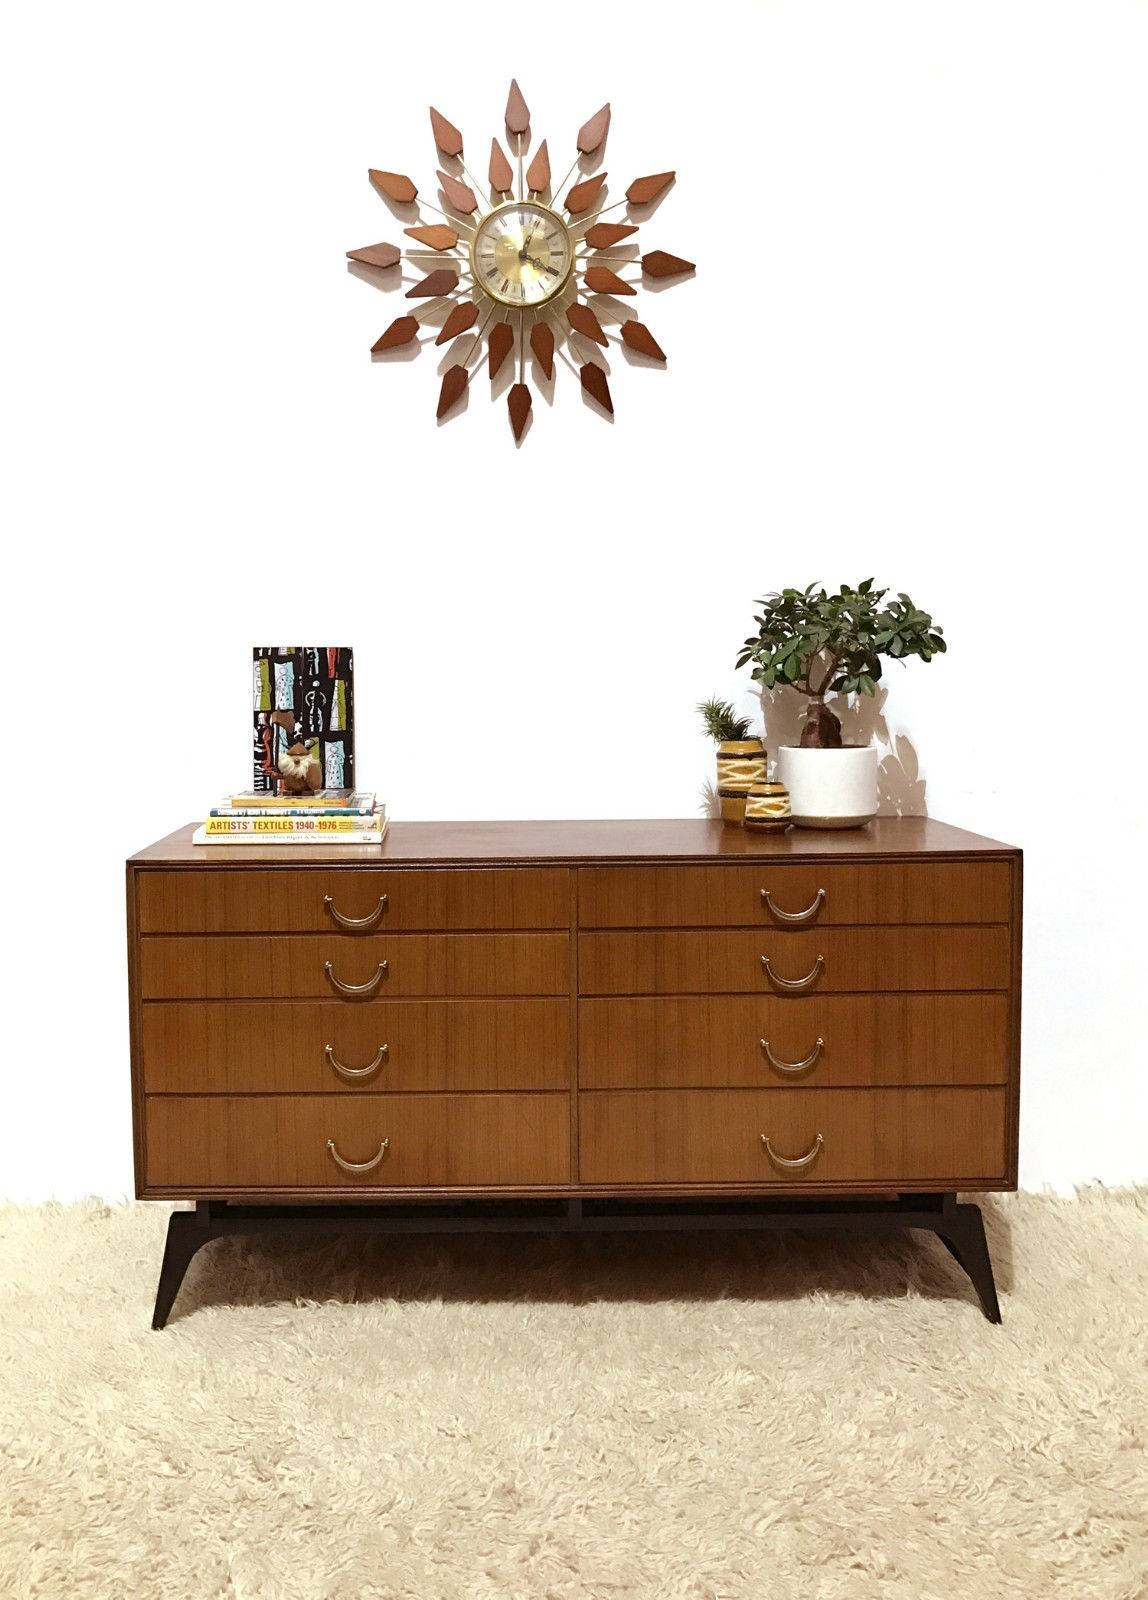 50S 60S Outstanding Mid Century Retro Vintage Sideboard Chest within 50S Sideboards (Image 3 of 15)